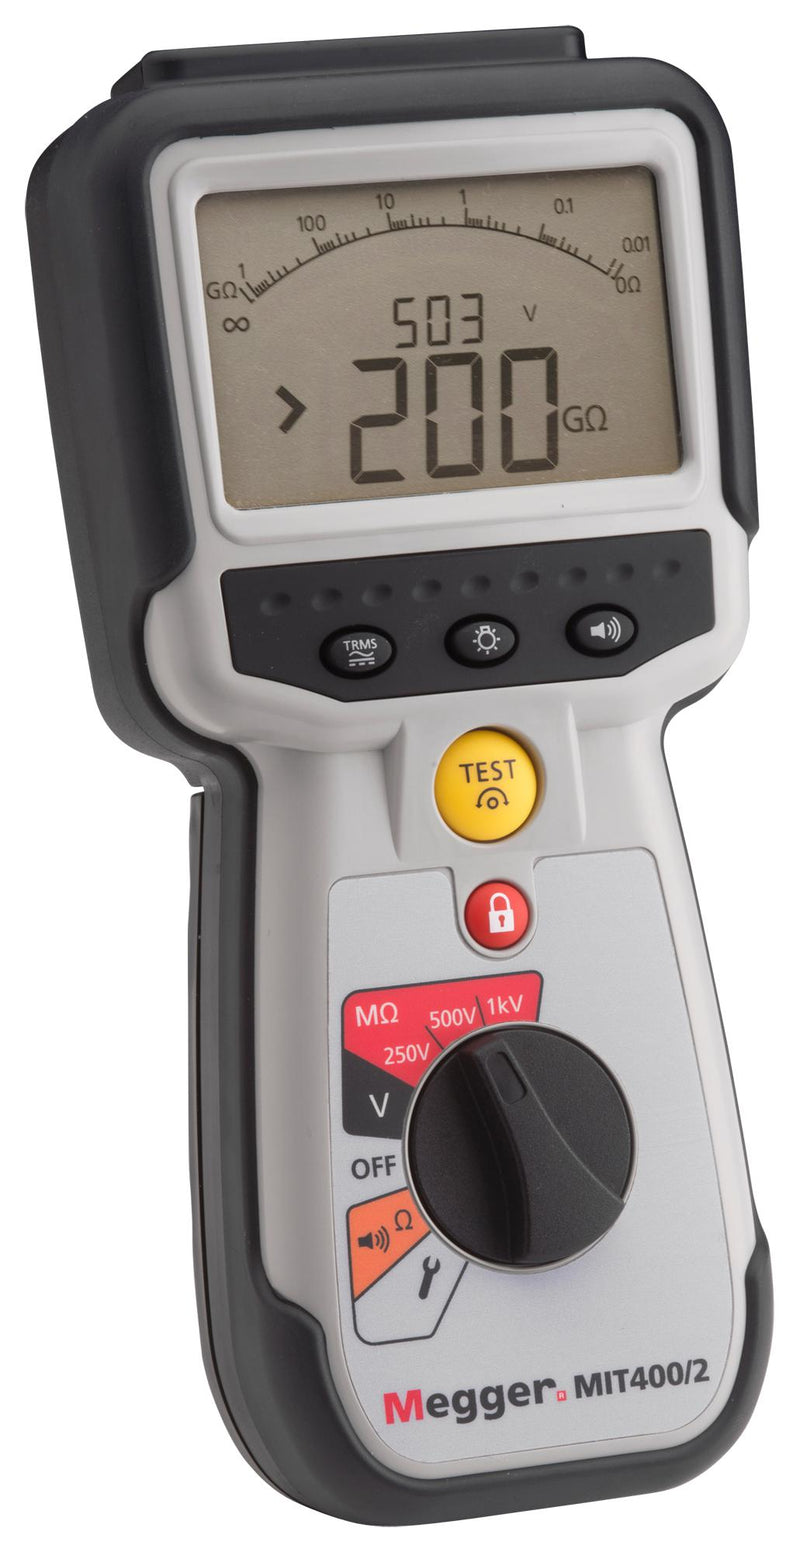 Megger MIT400/2 Series Insulation Testers